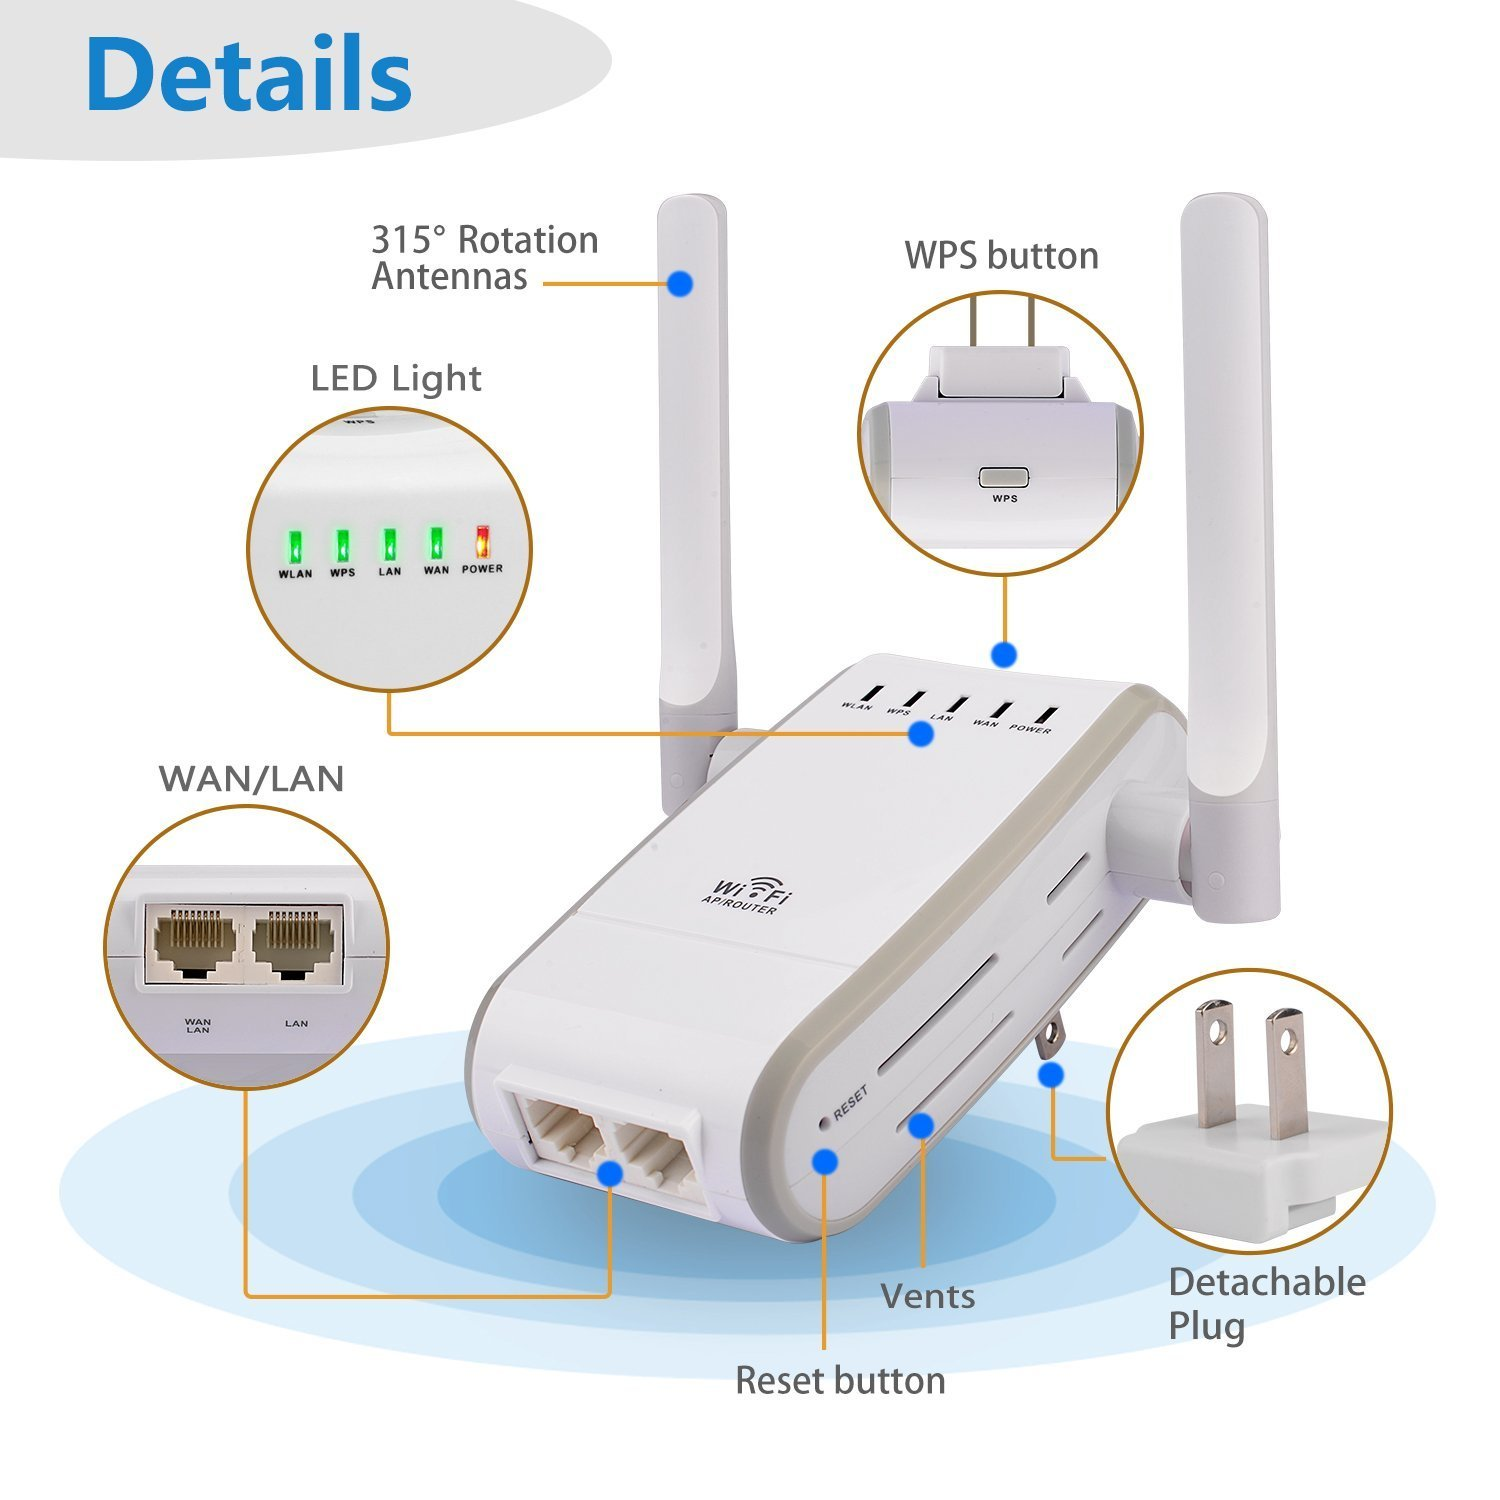 DHMXDC Wireless-N 300Mbps WiFi Range Extender Wireless Router/Repeater/AP/Wps Mini Dual External Antennas Wireless Booster Signal Wireless Access Point by DHMXDC (Image #2)